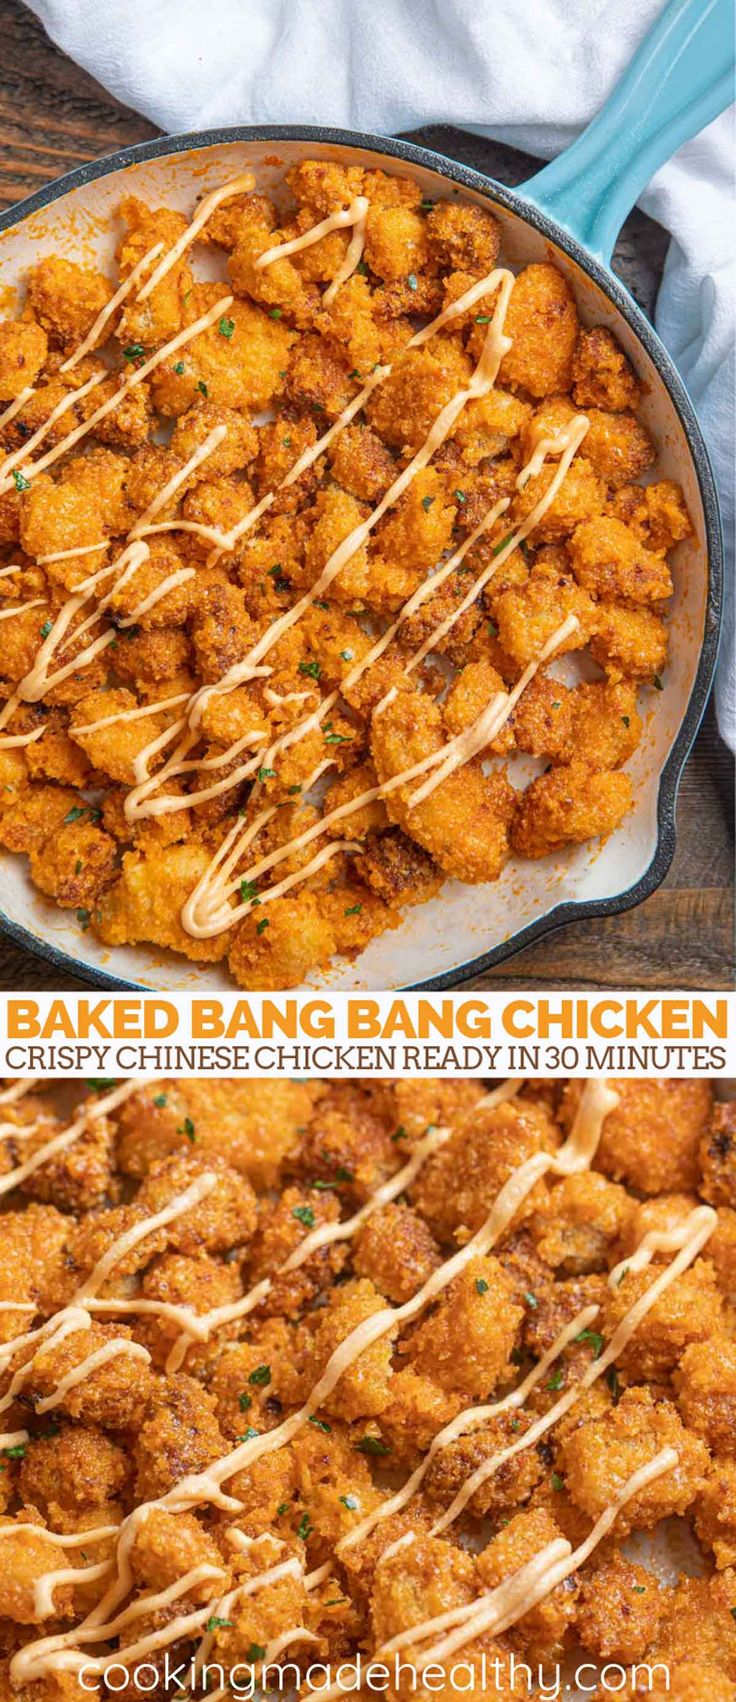 Baked Bang Bang Chicken is a crispy chicken Chinese restaurant favorite served i…